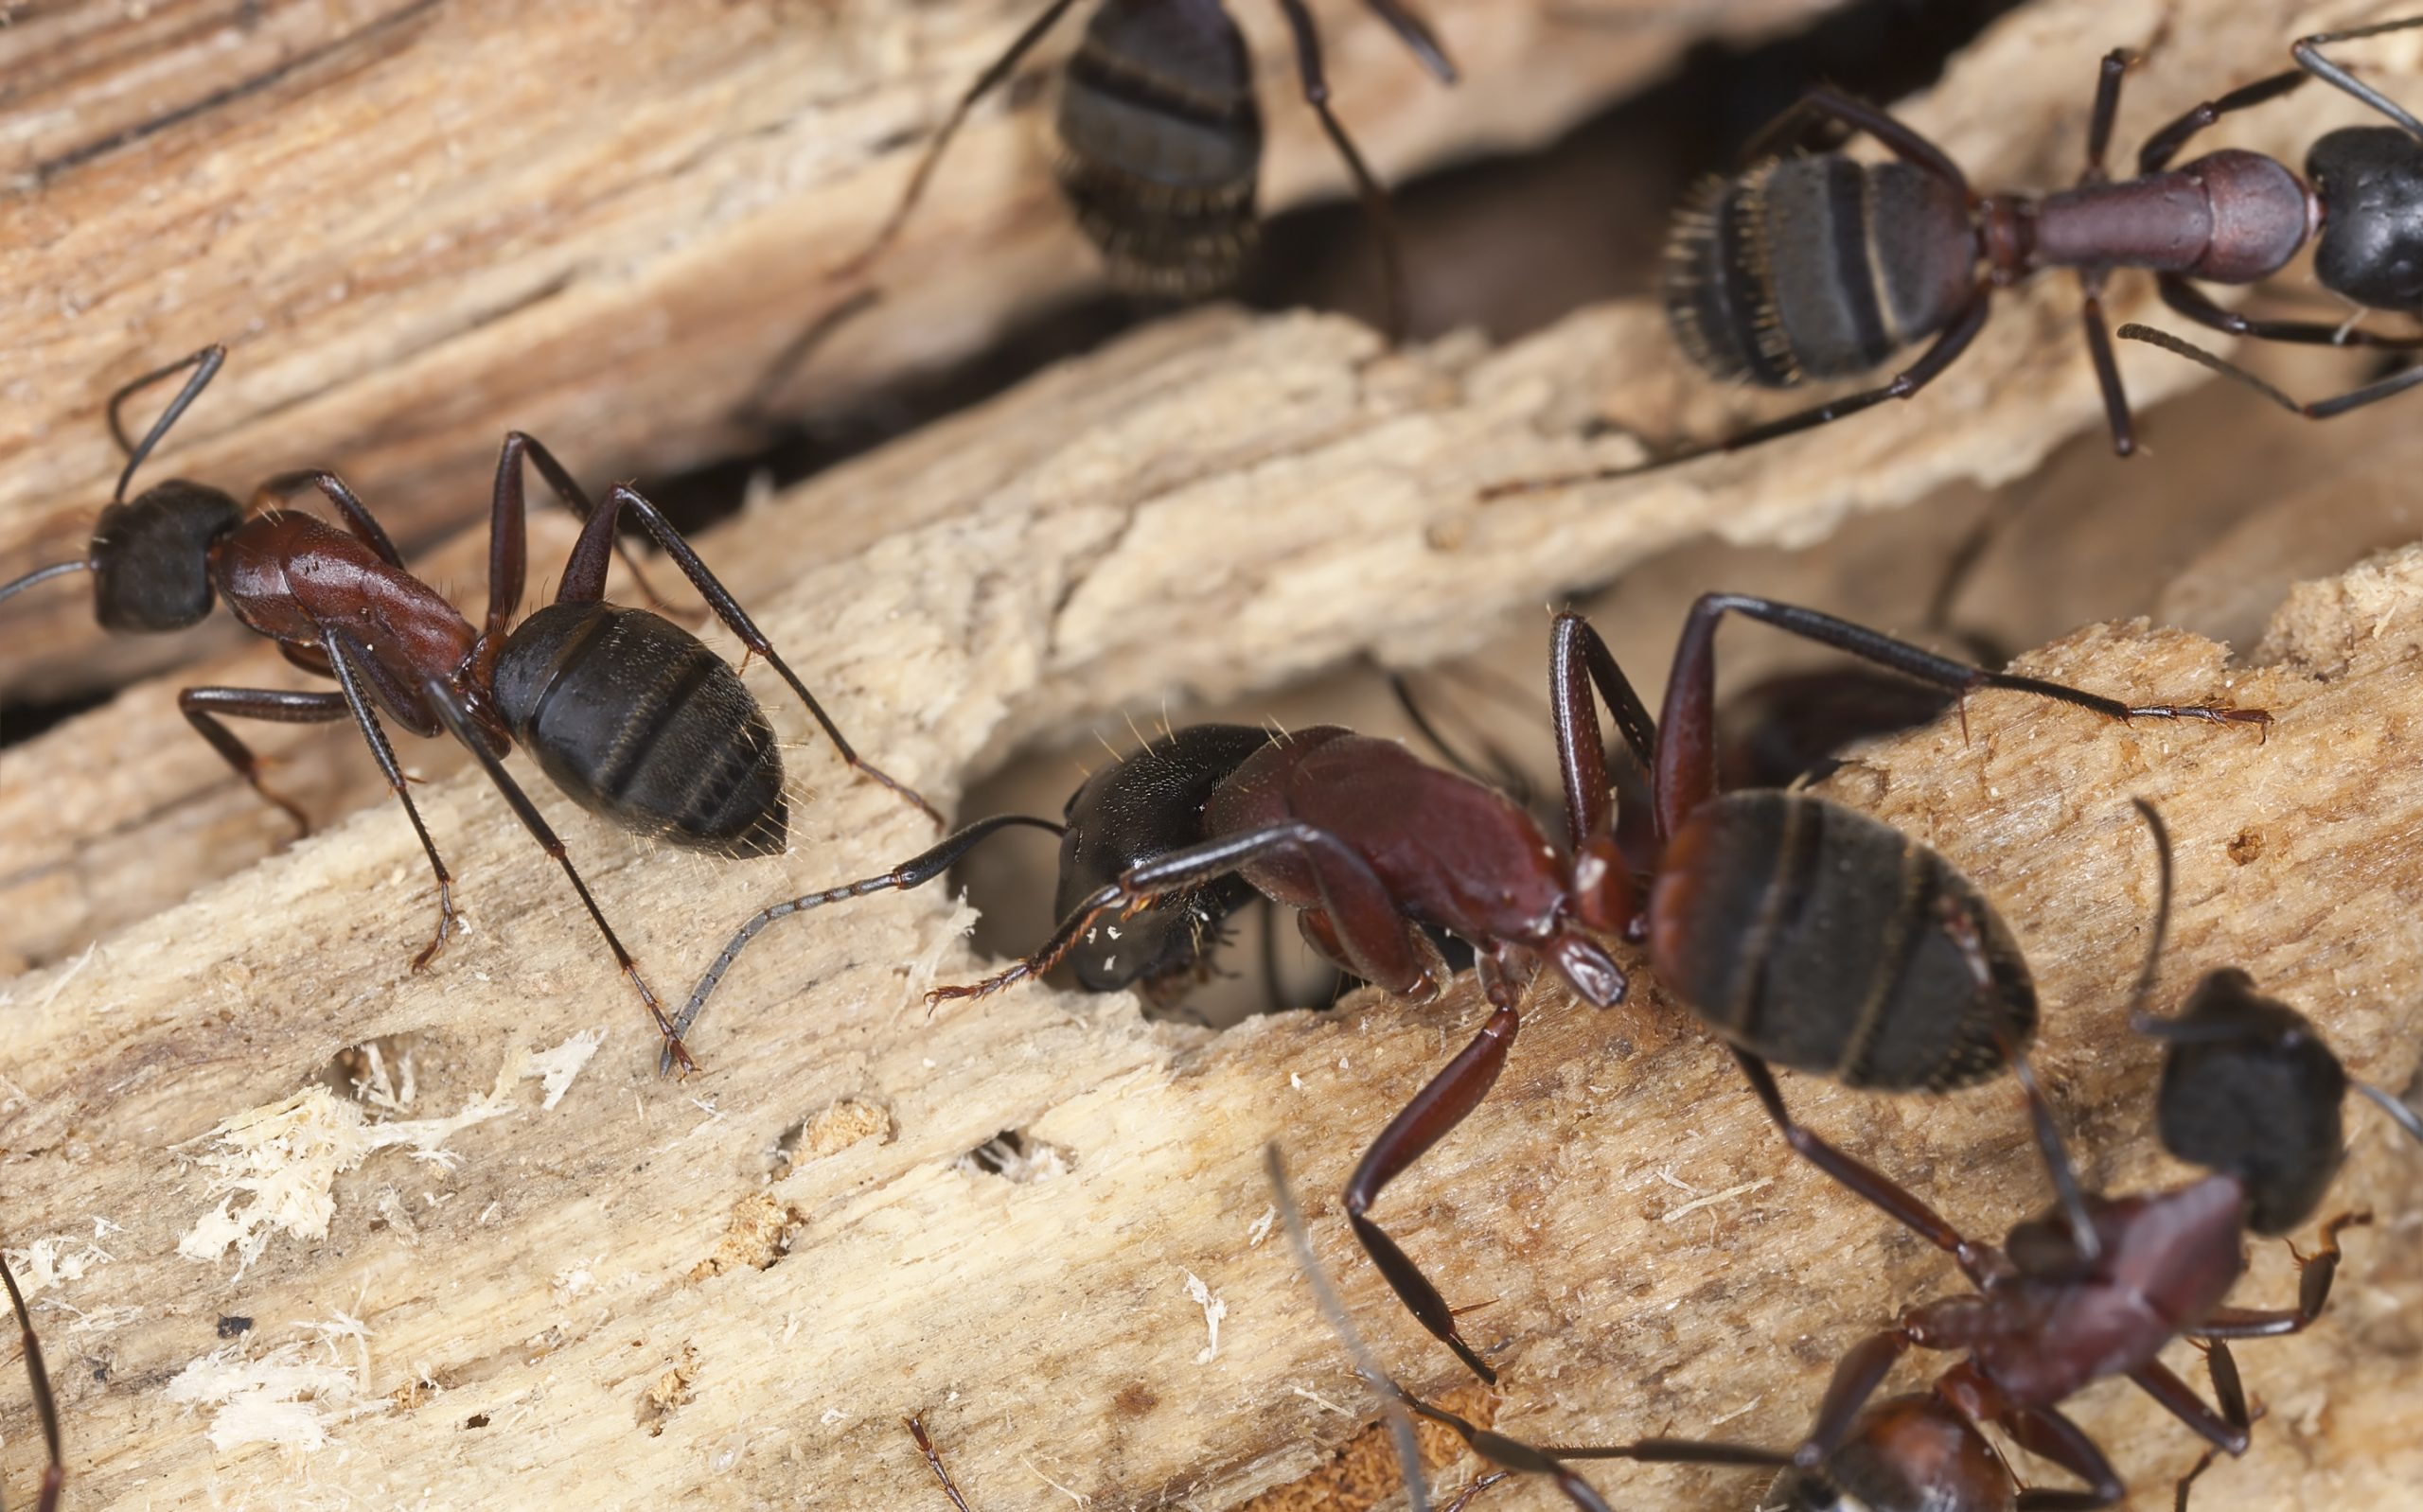 Carpenter Ants Cause Damage To Homes